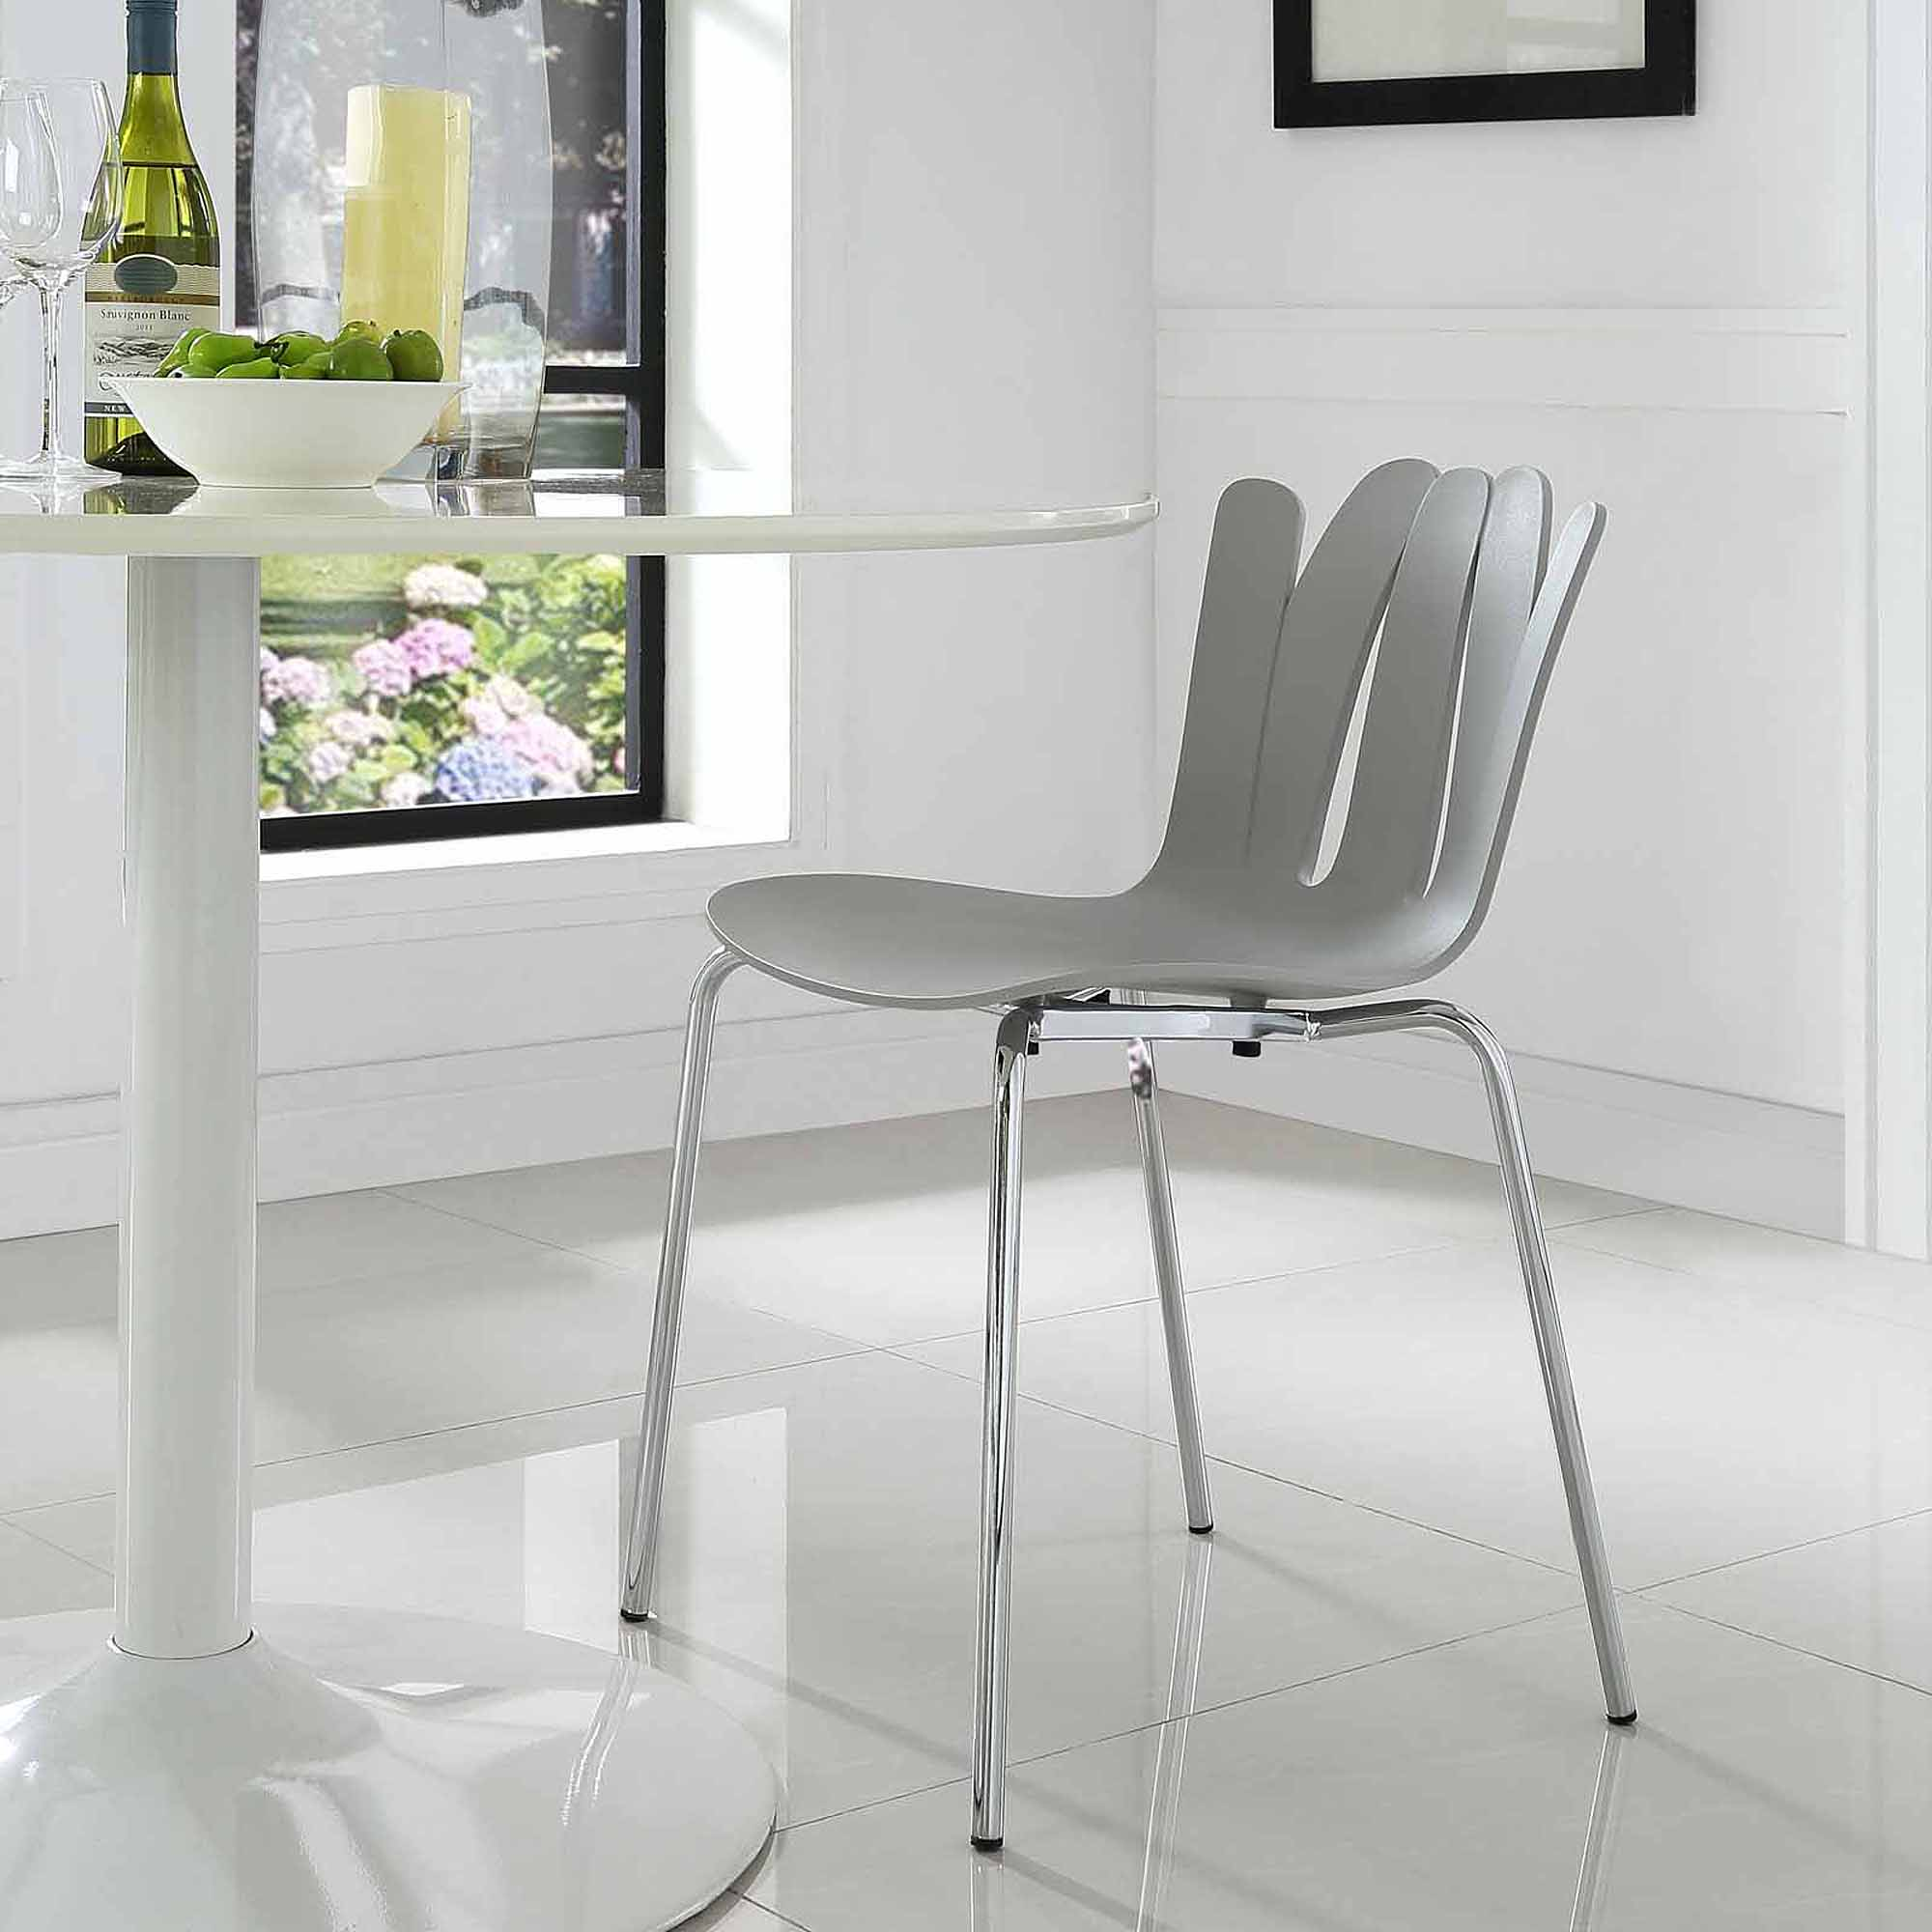 Modway Flare Dining Side Chair with Steel Legs, Multiple Colors